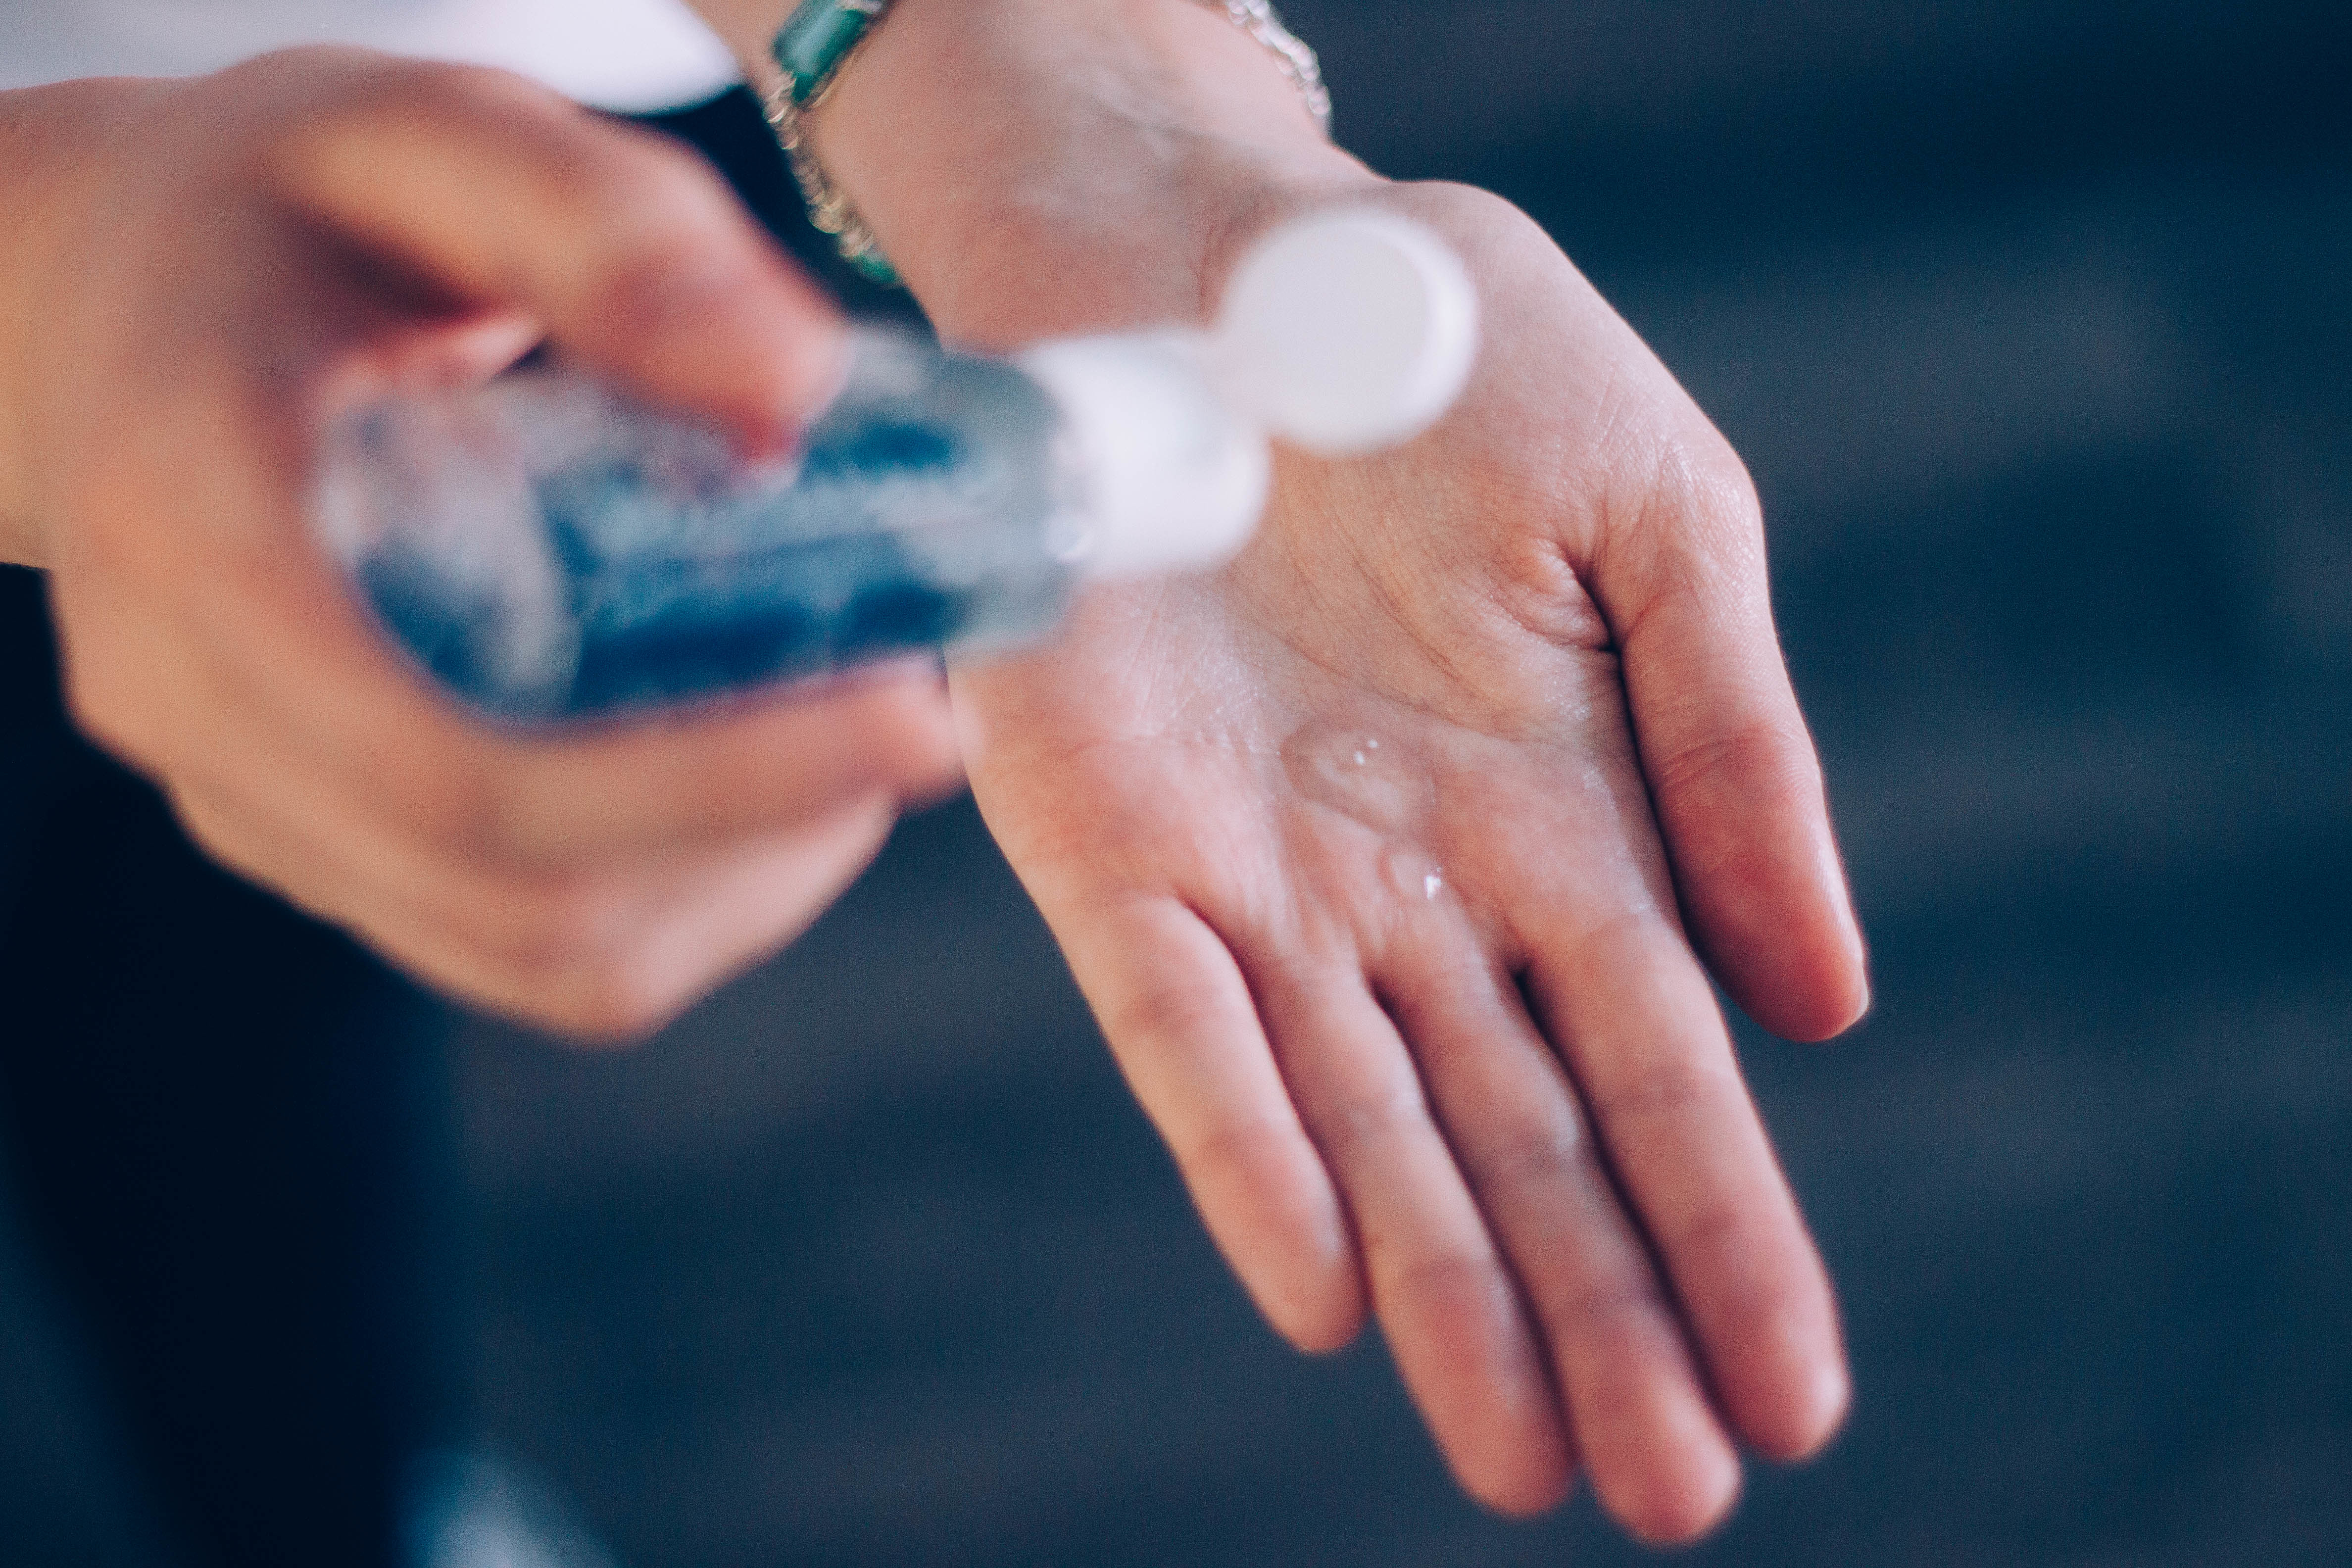 person applying hand sanitizer.